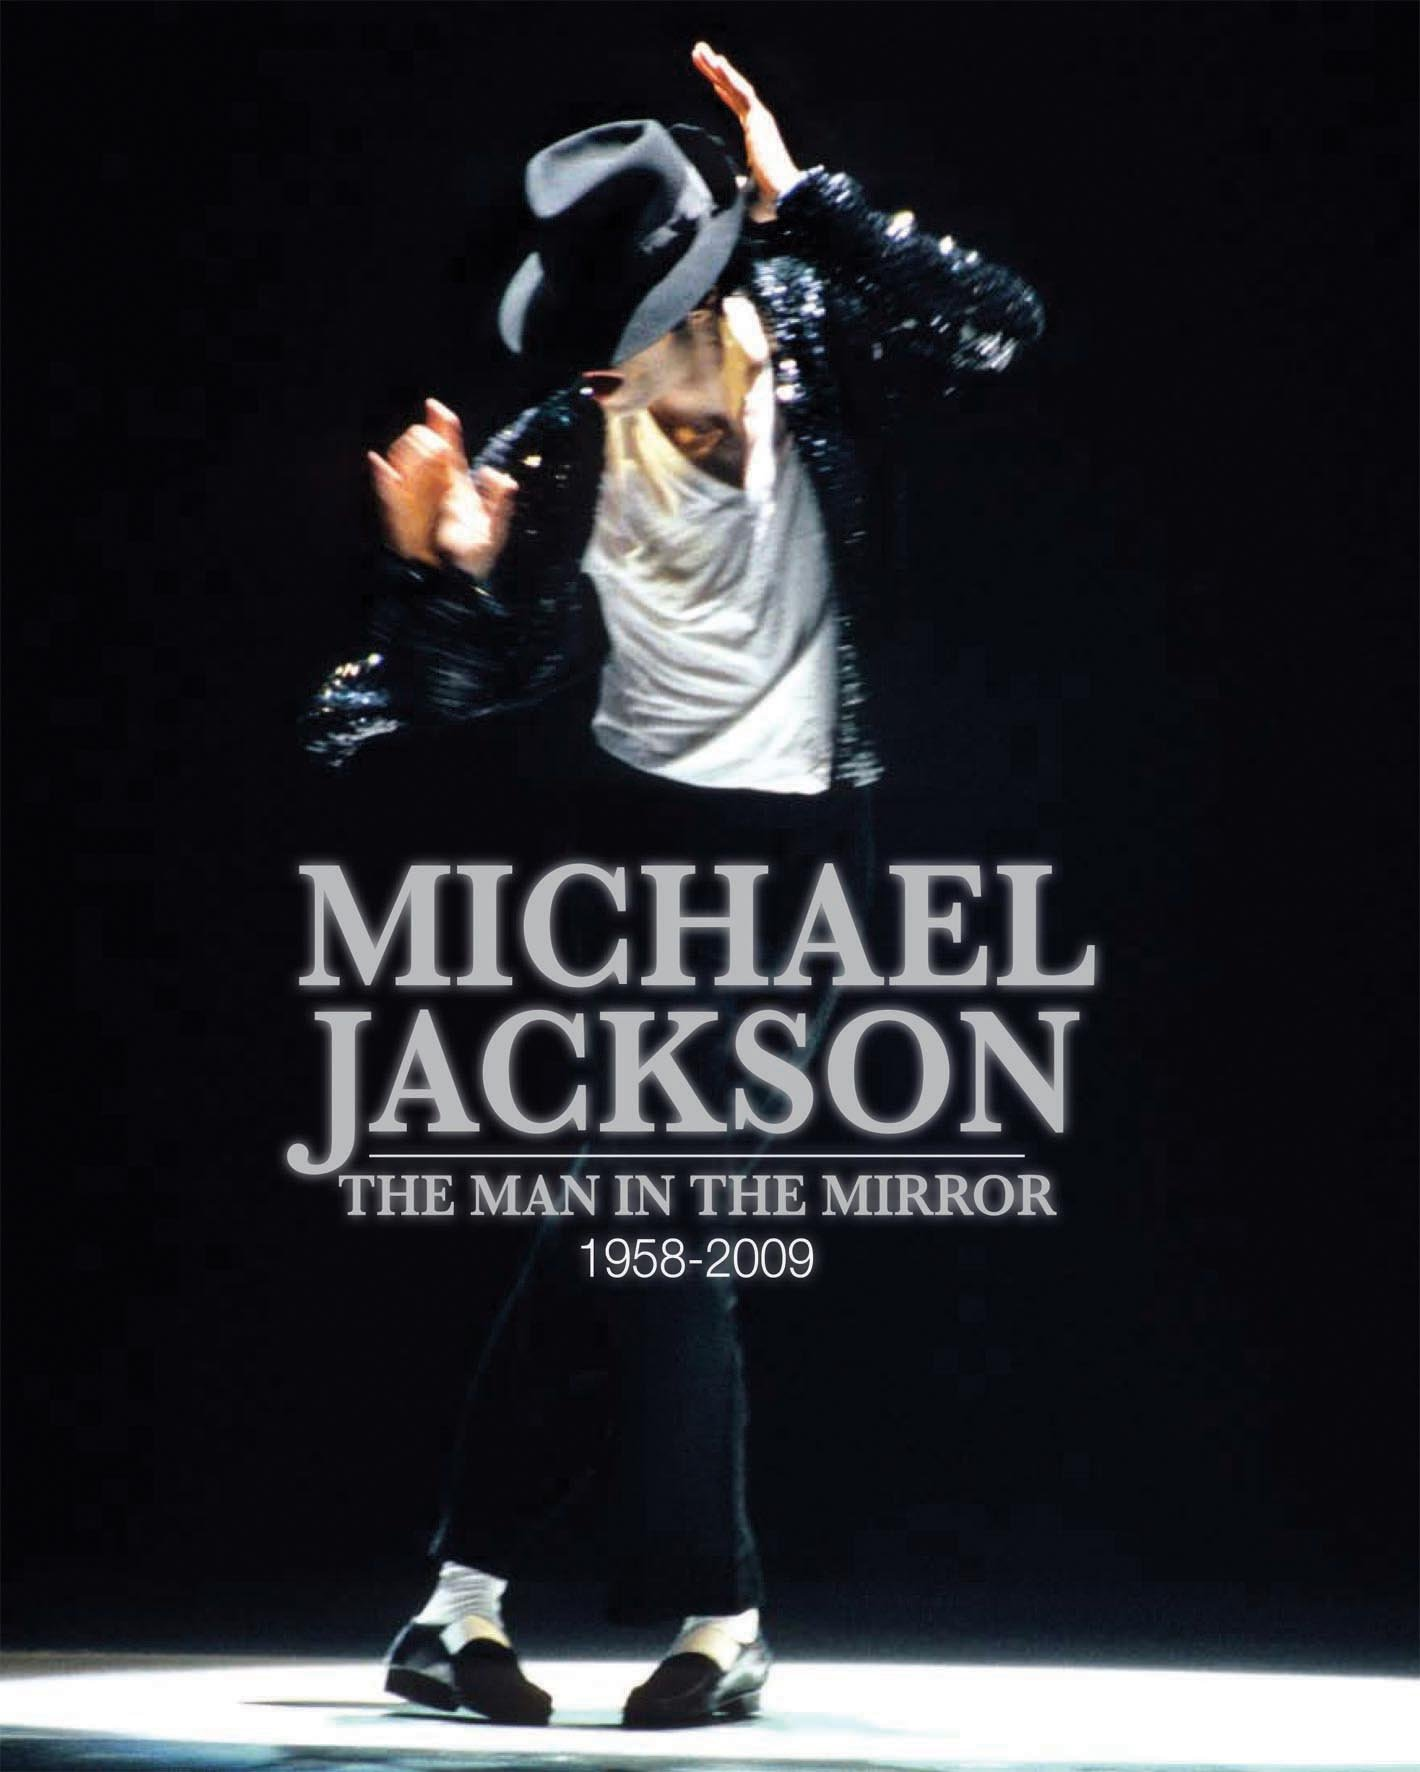 Buy Michael Jackson The Man In Mirror 1958 2009 Unseen Archives Book Online At Low Prices India